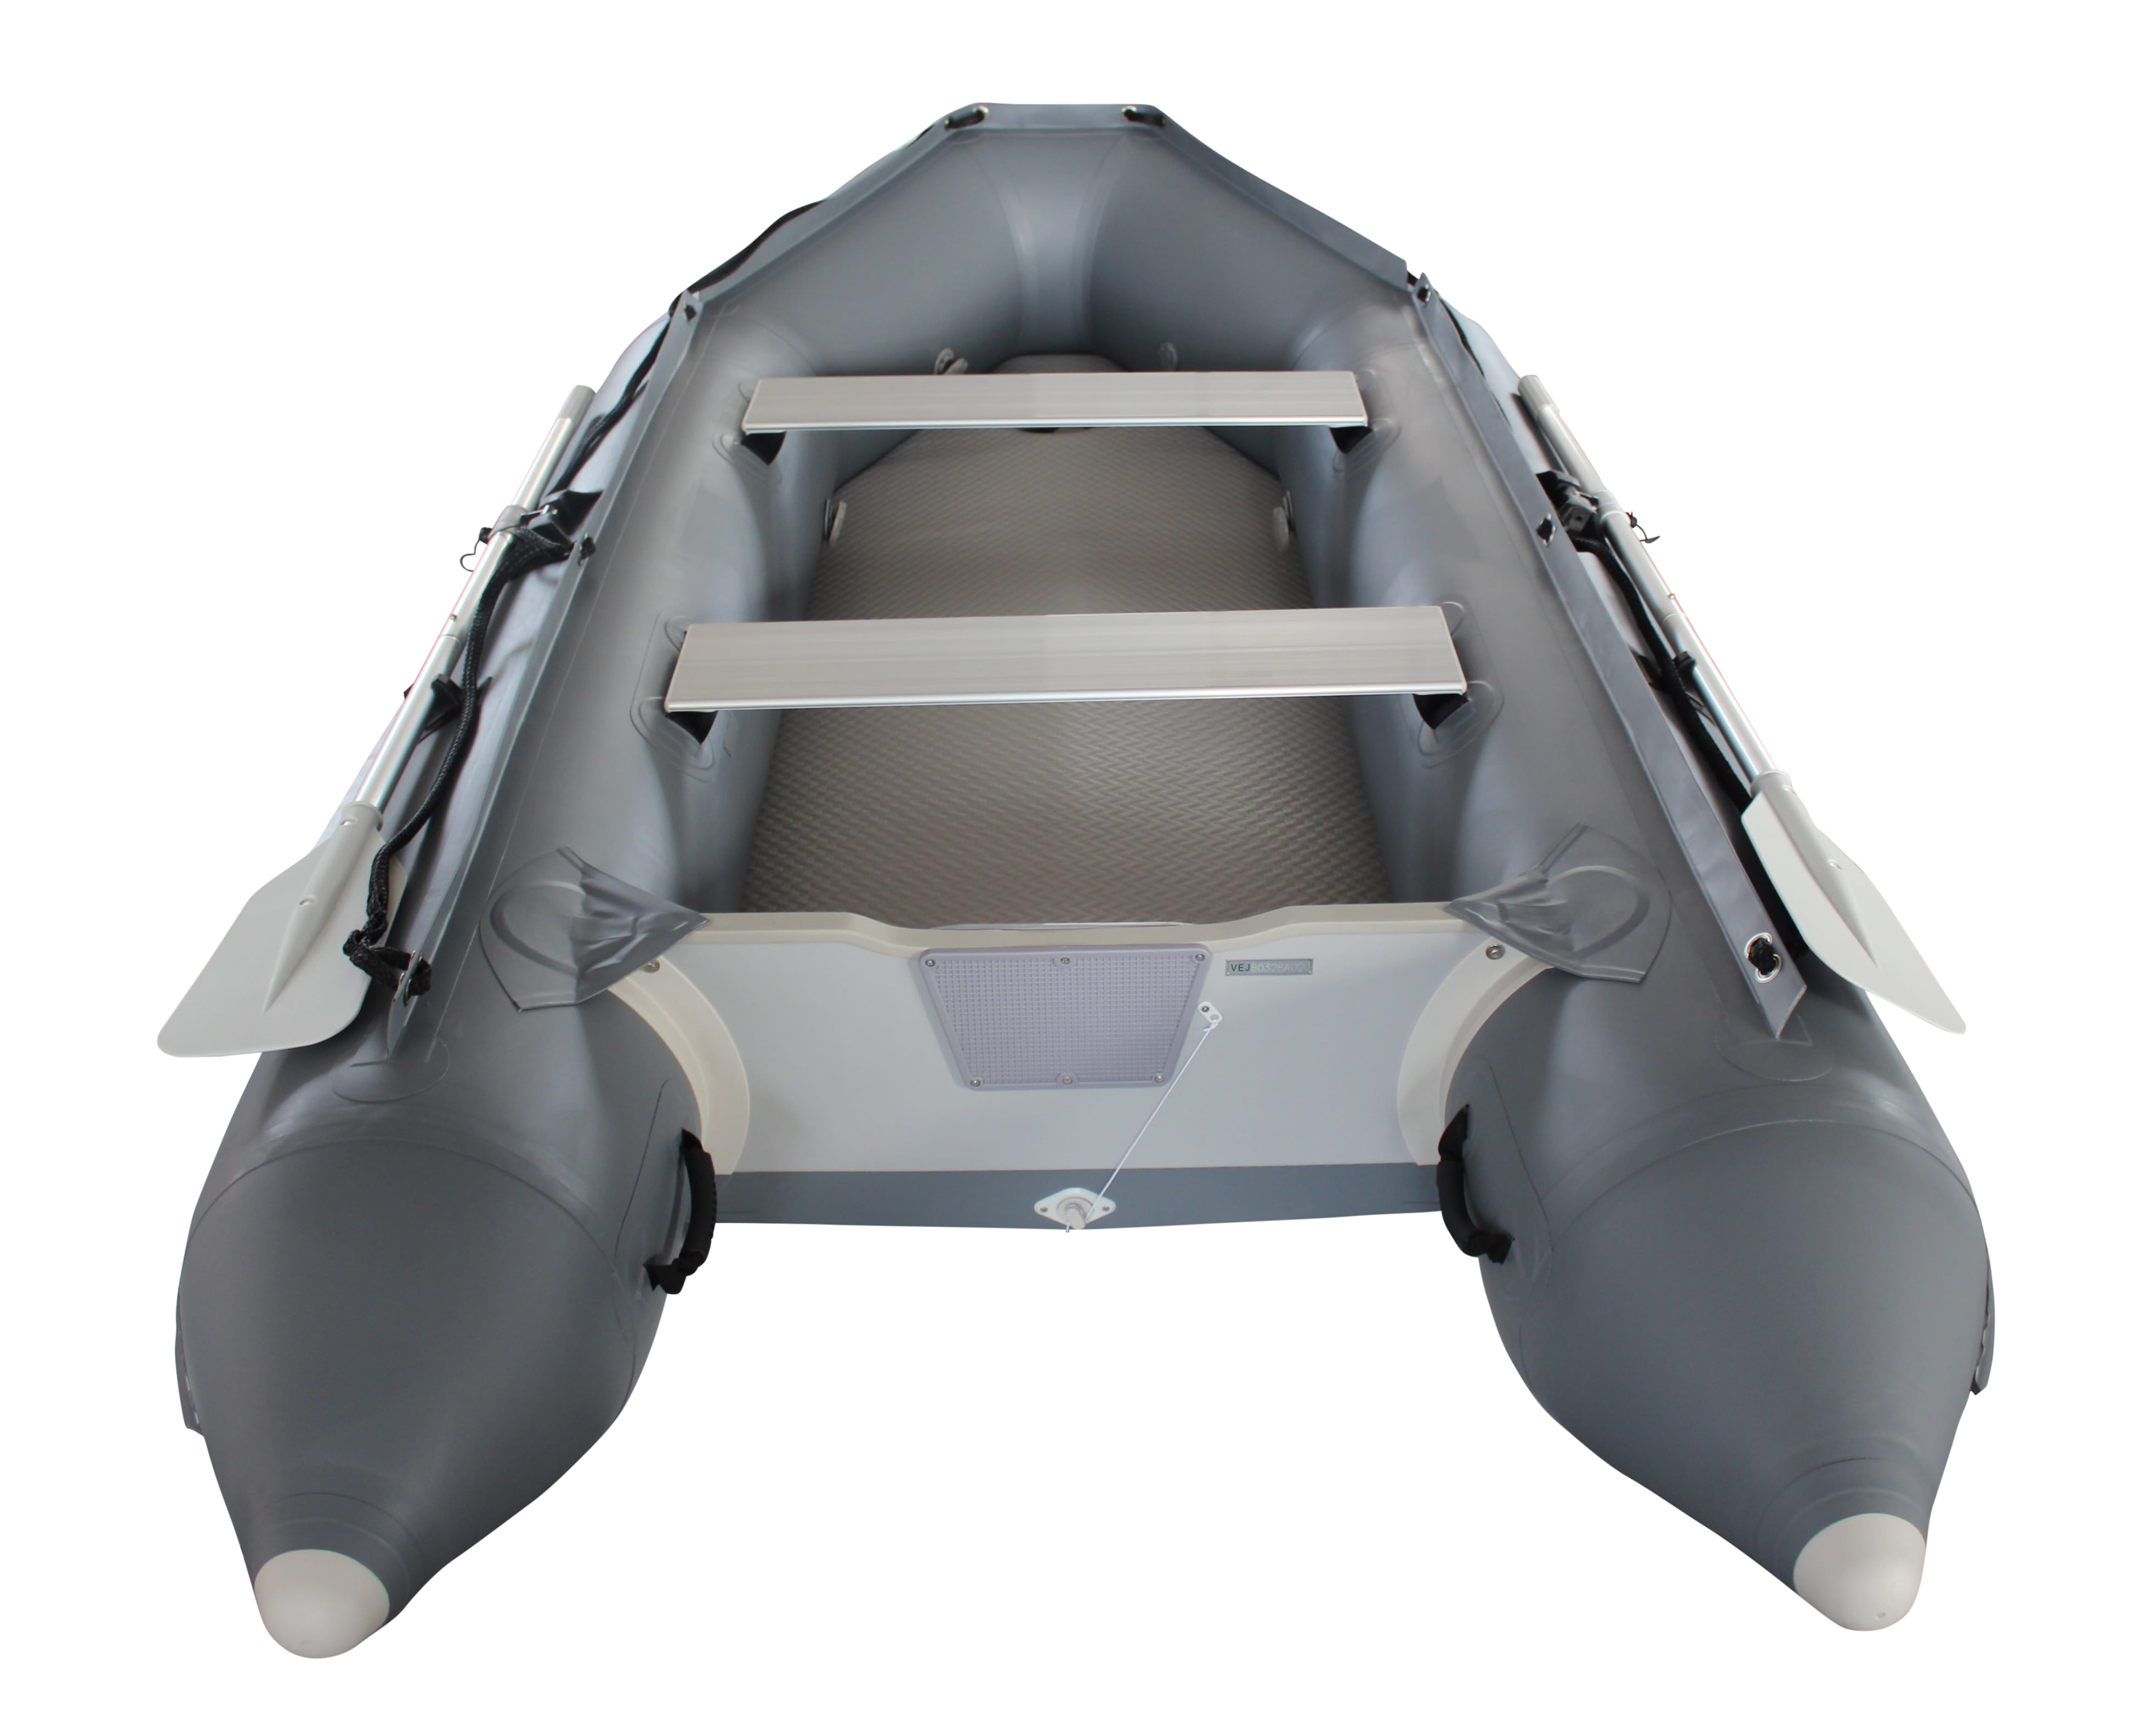 New 2020 11' Saturn Dinghy (Dark Grey)